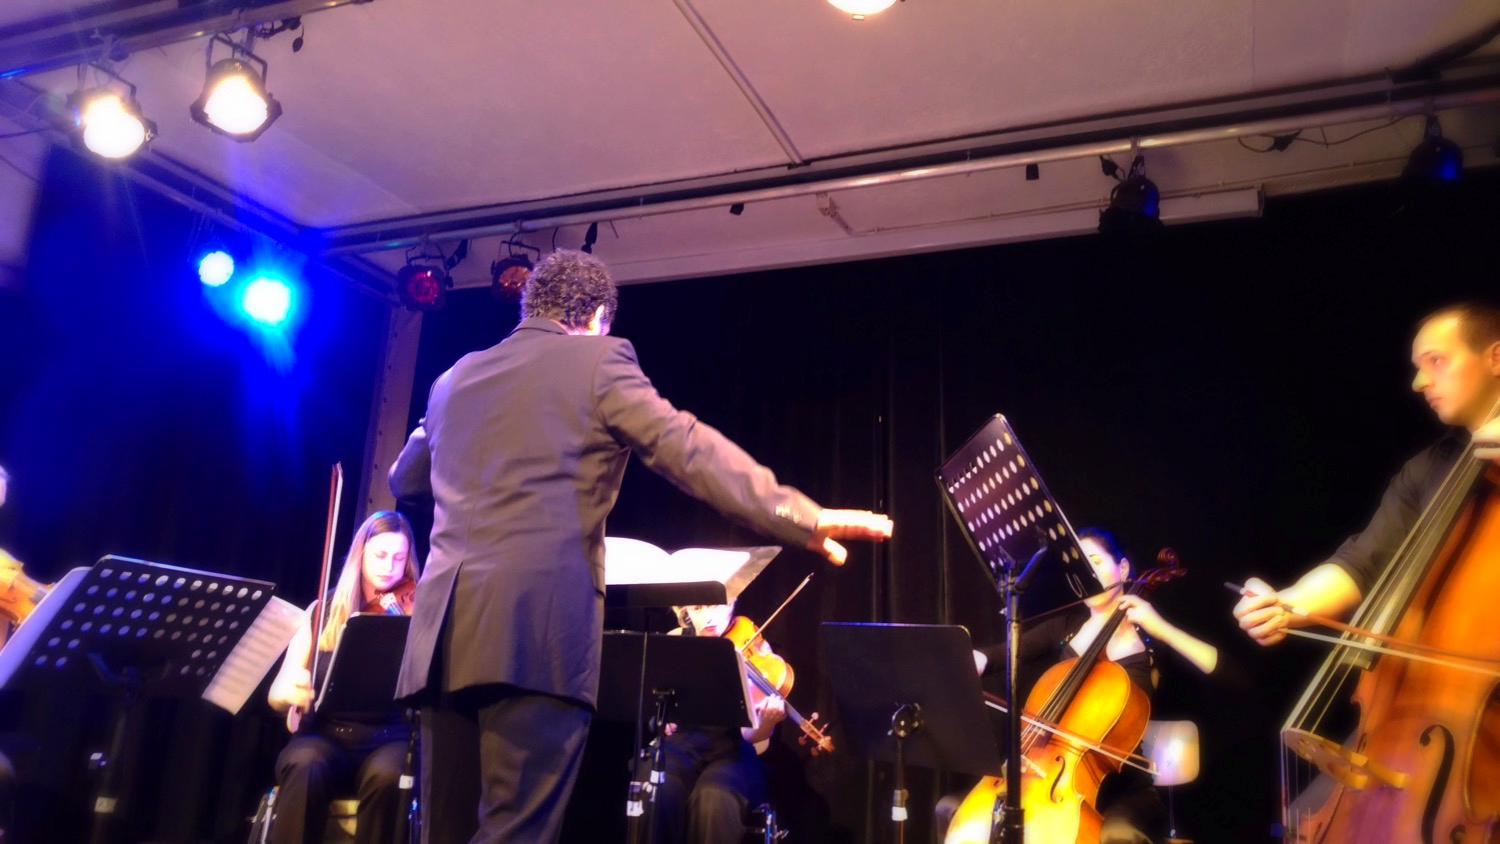 Conducting performance of my String Quintett - Munich Freies Musikzentrum